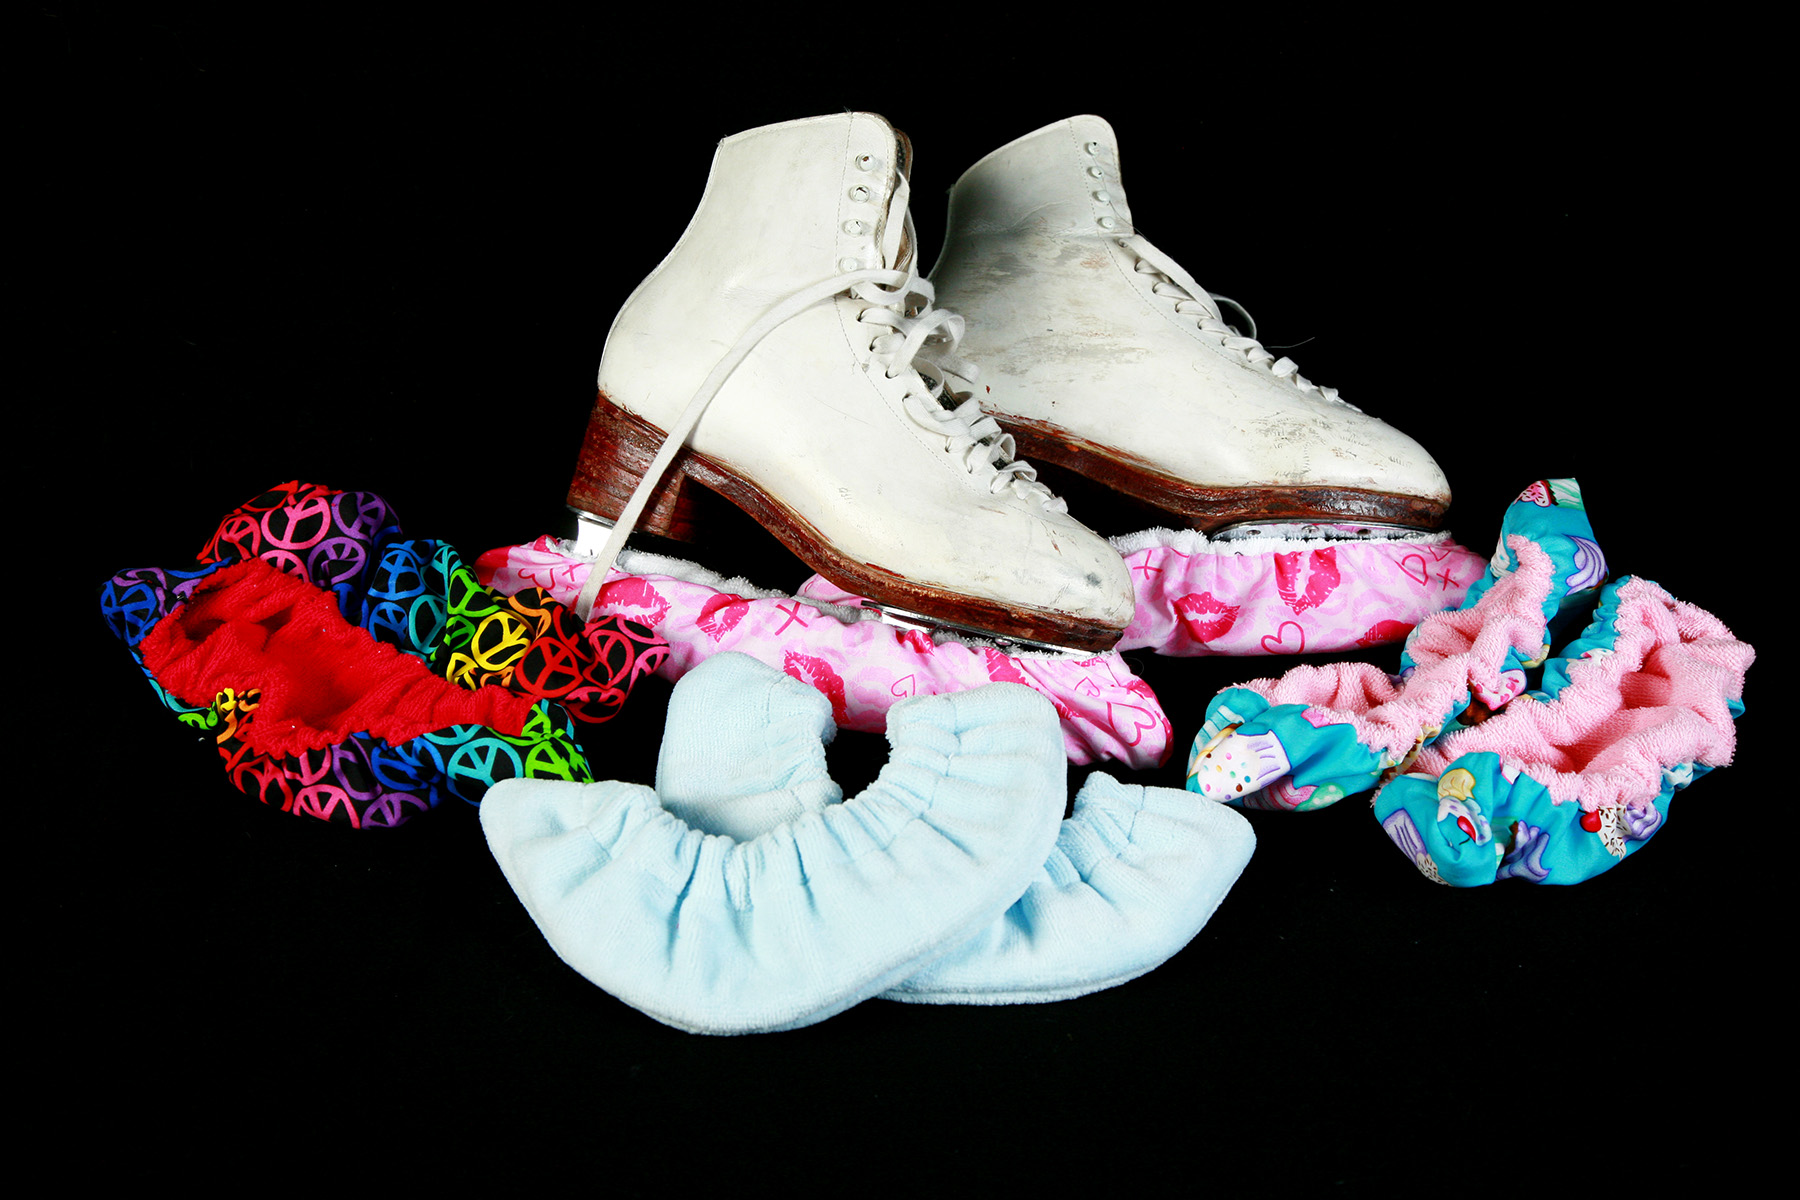 A pair of skates is surrounded by colourful fabric blade covers.